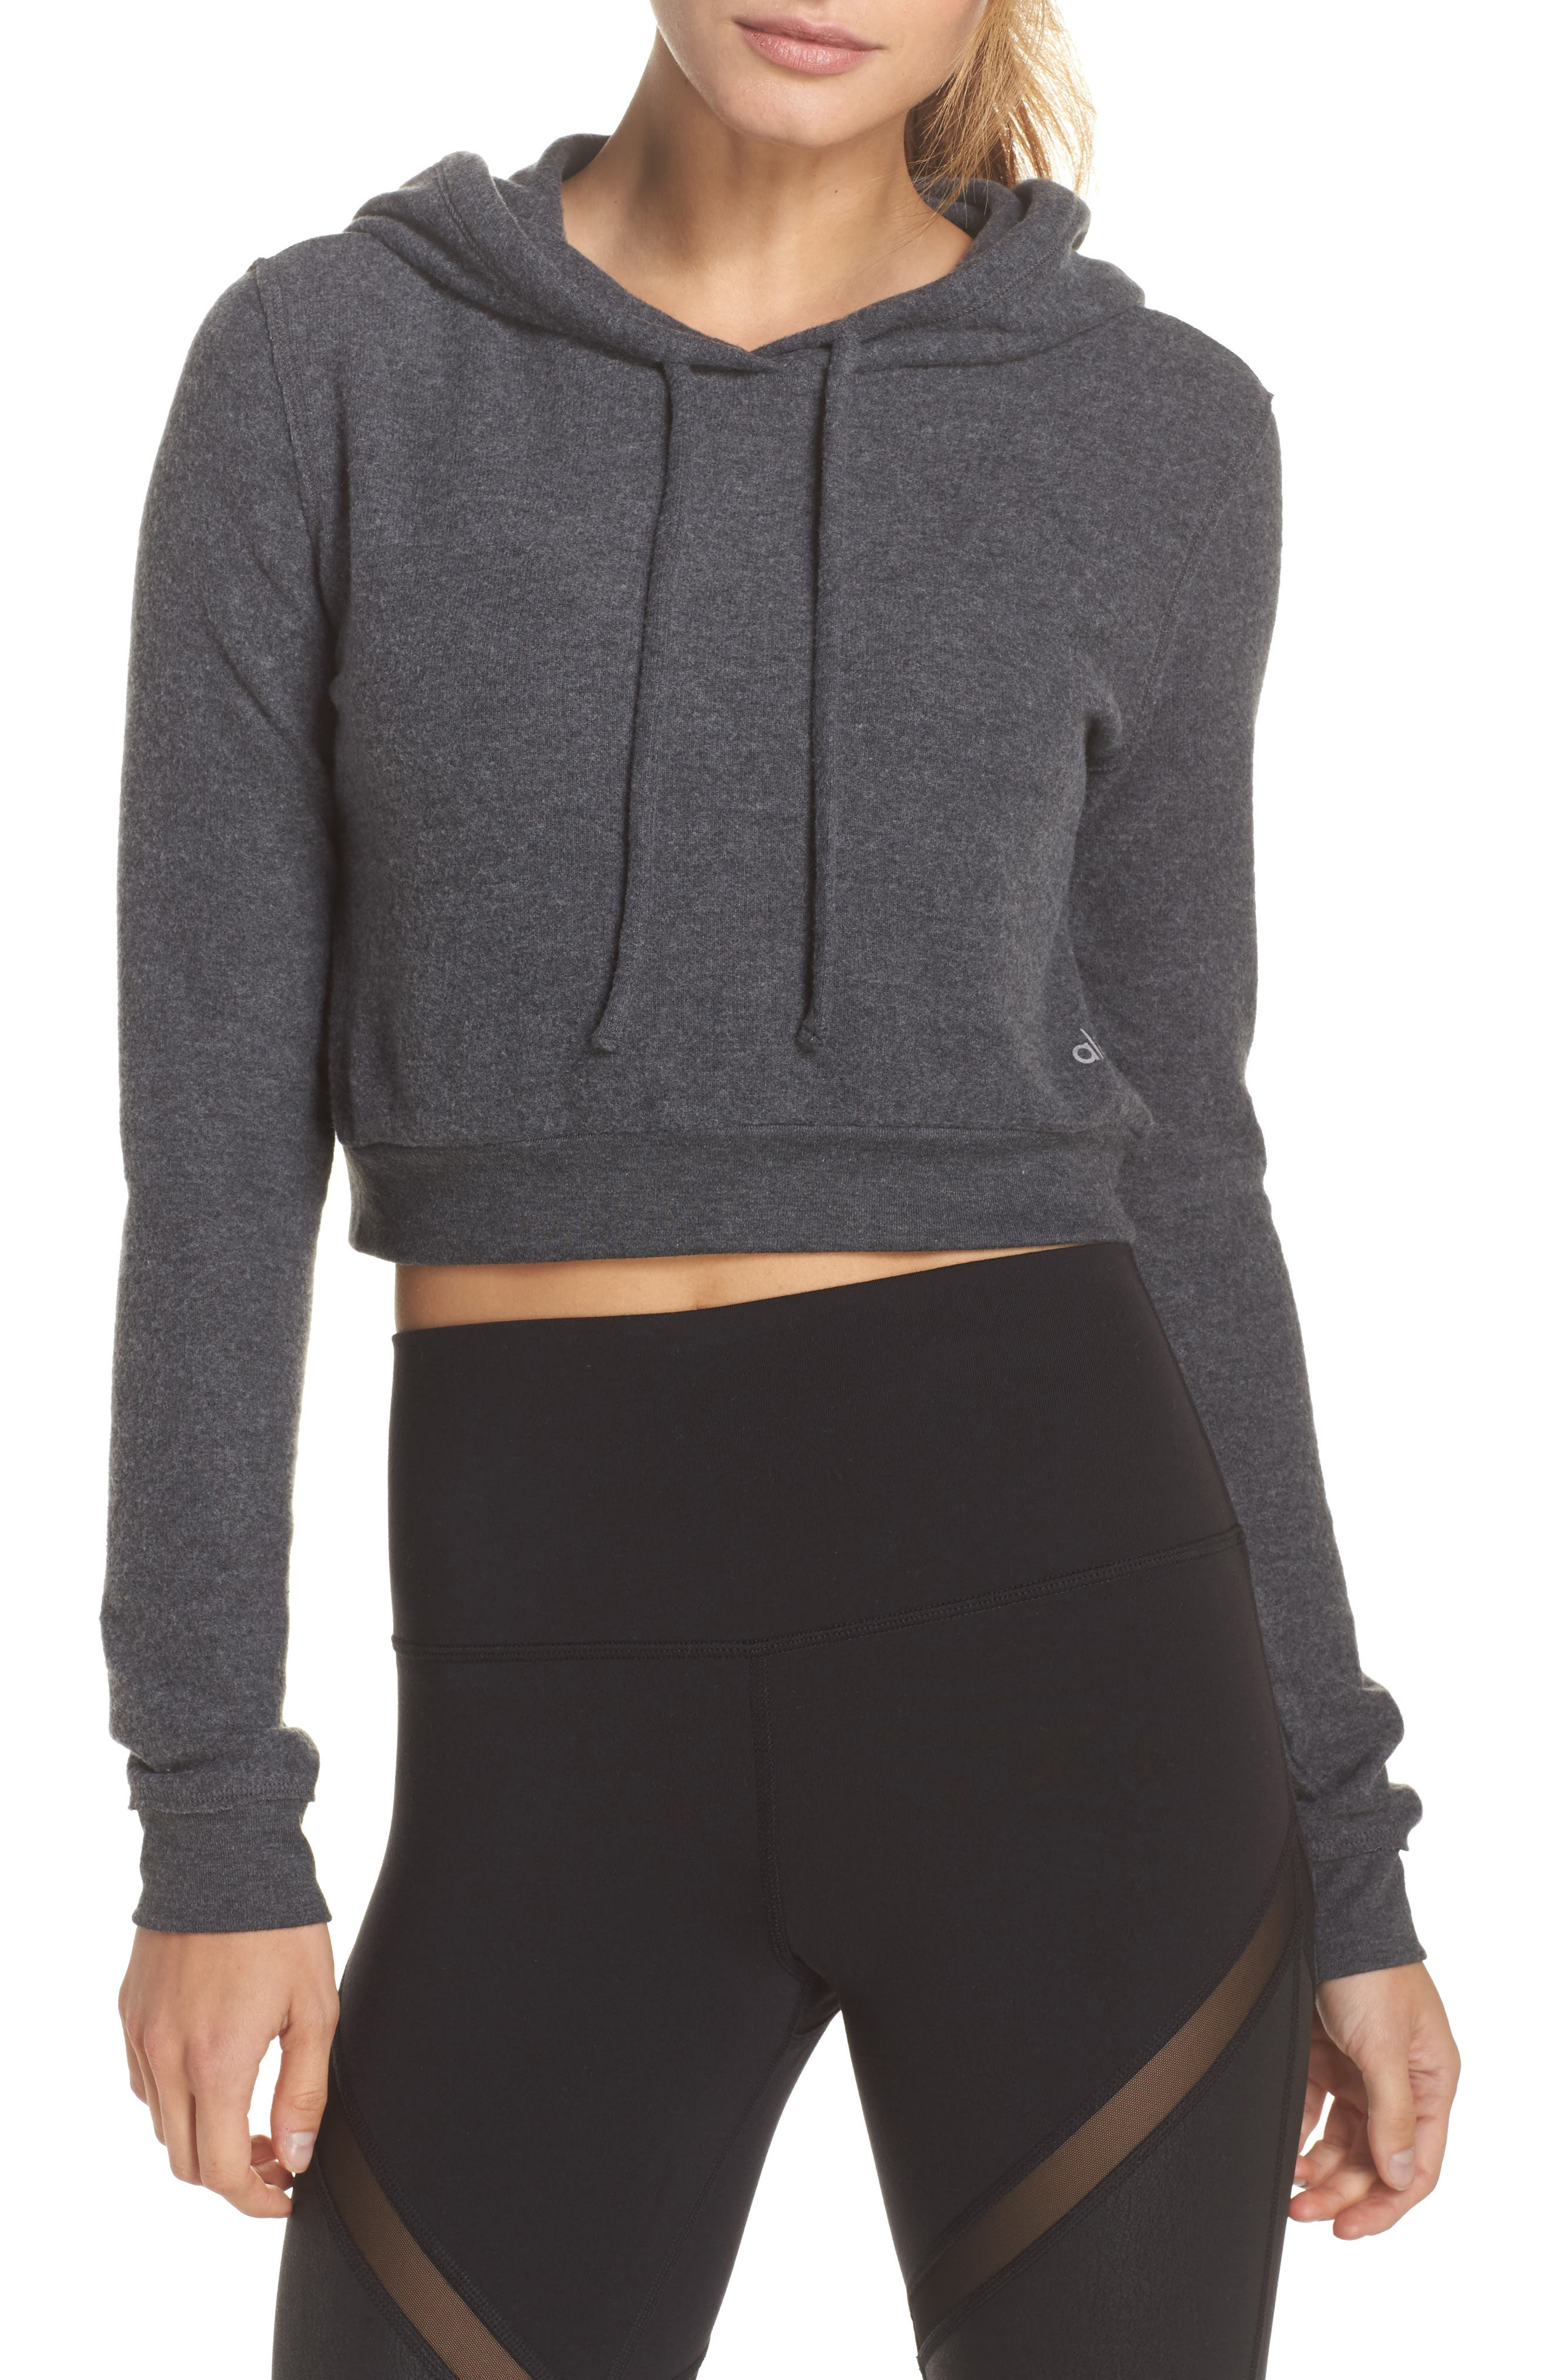 Getaway Hoodie,                             Main thumbnail 1, color,                             Anthracite Heather